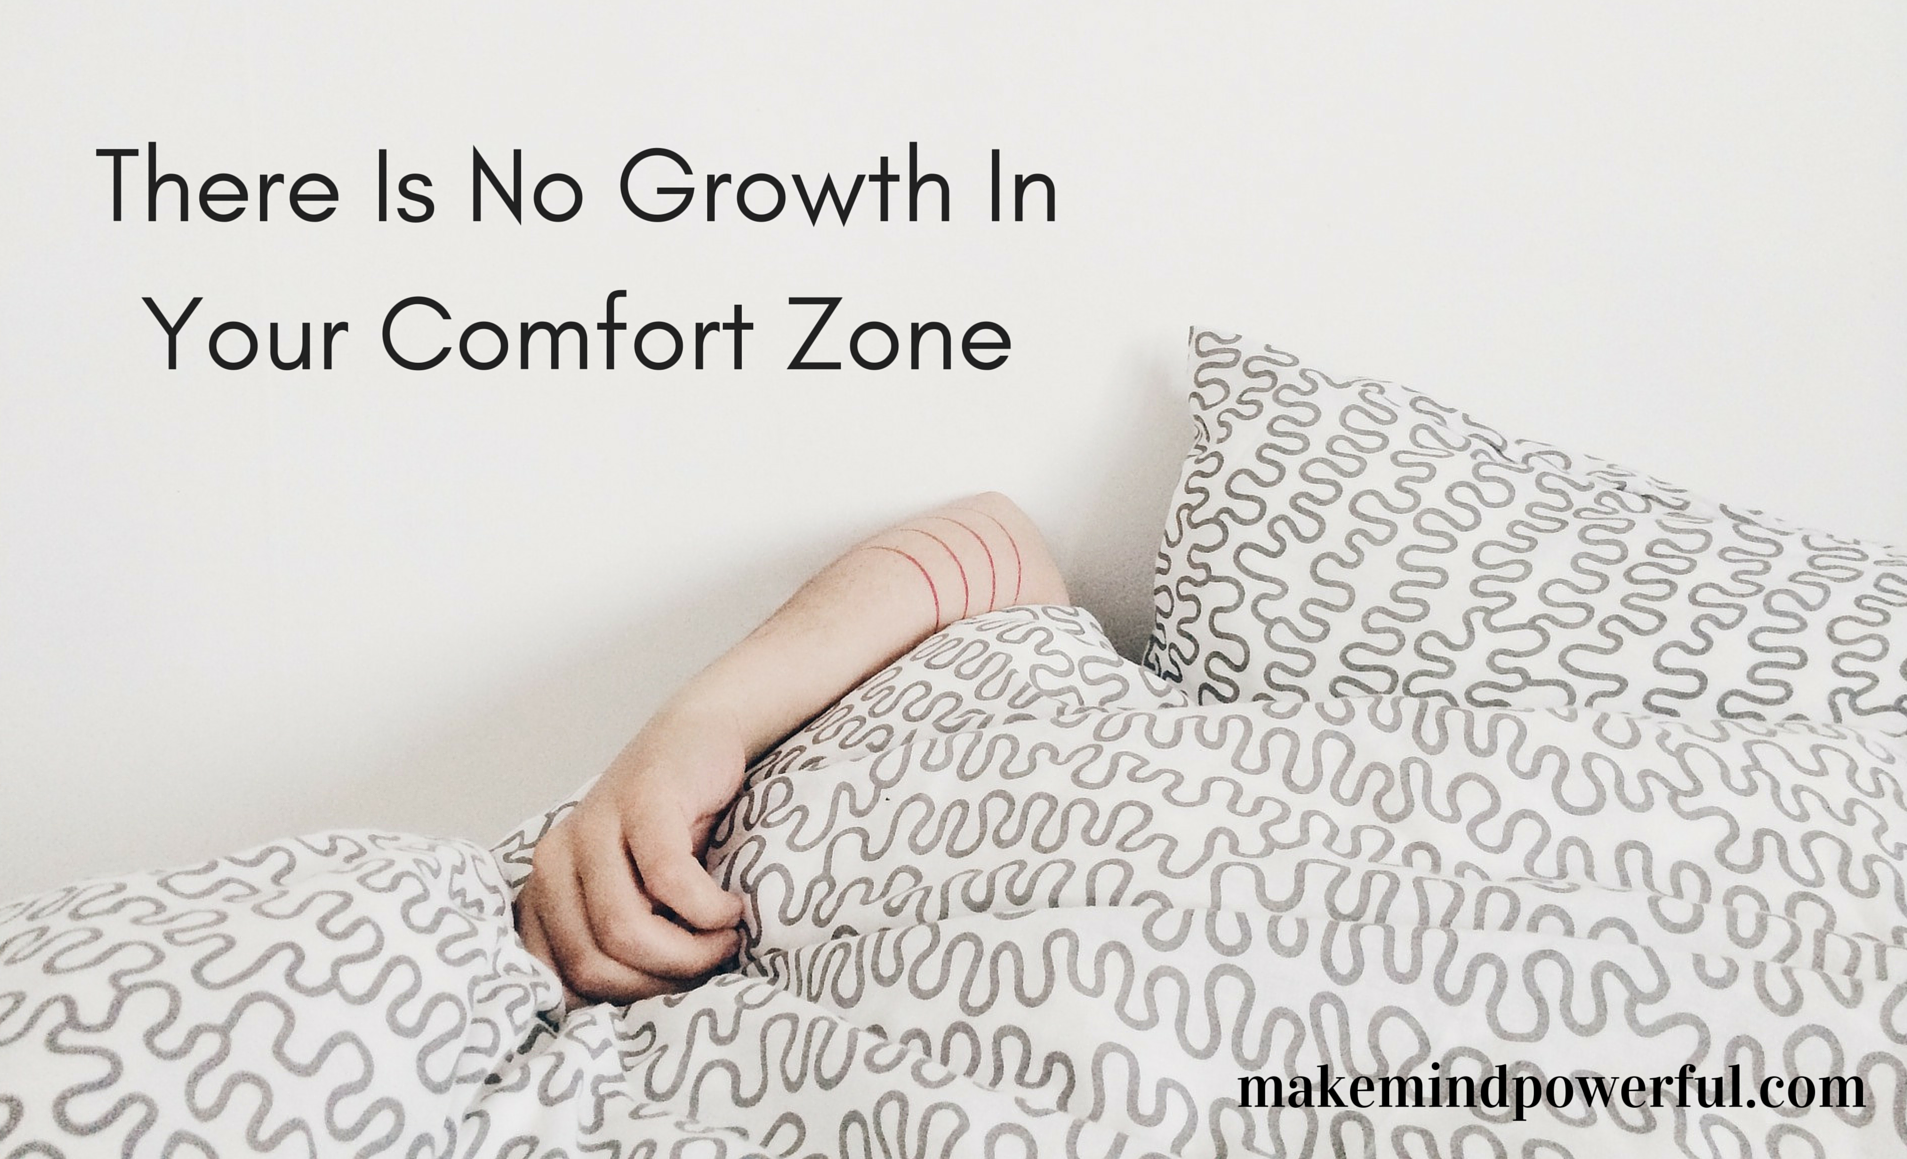 There Is No Growth In Your Comfort Zone